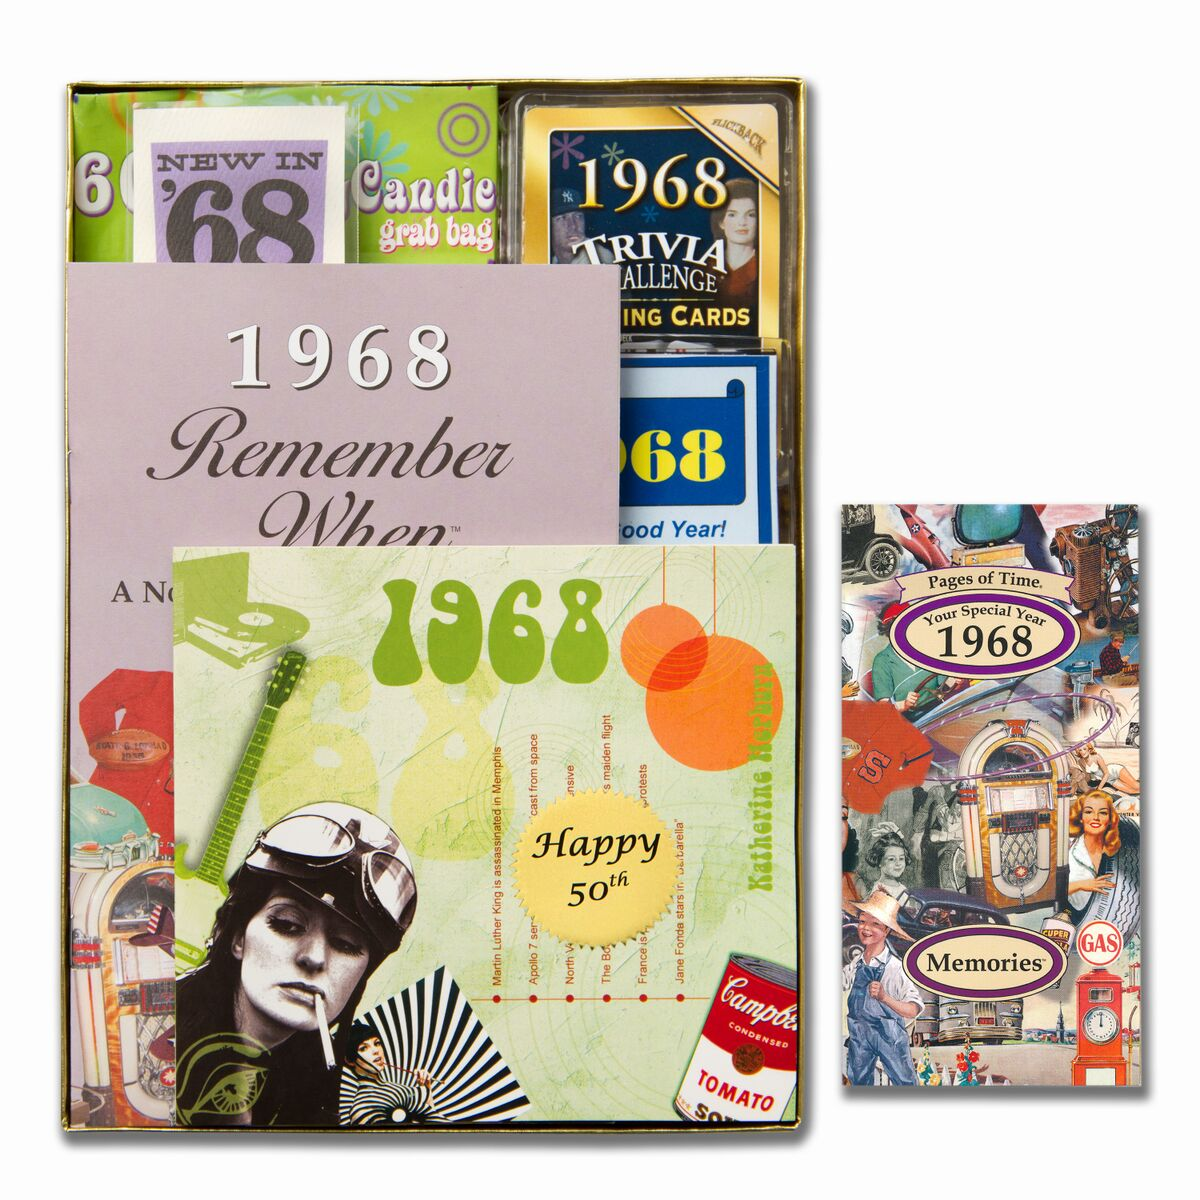 1966 Time Capsule 50th Birthday Gift For Men Or Women: Personalized 50th Birthday Time Capsule For 1968